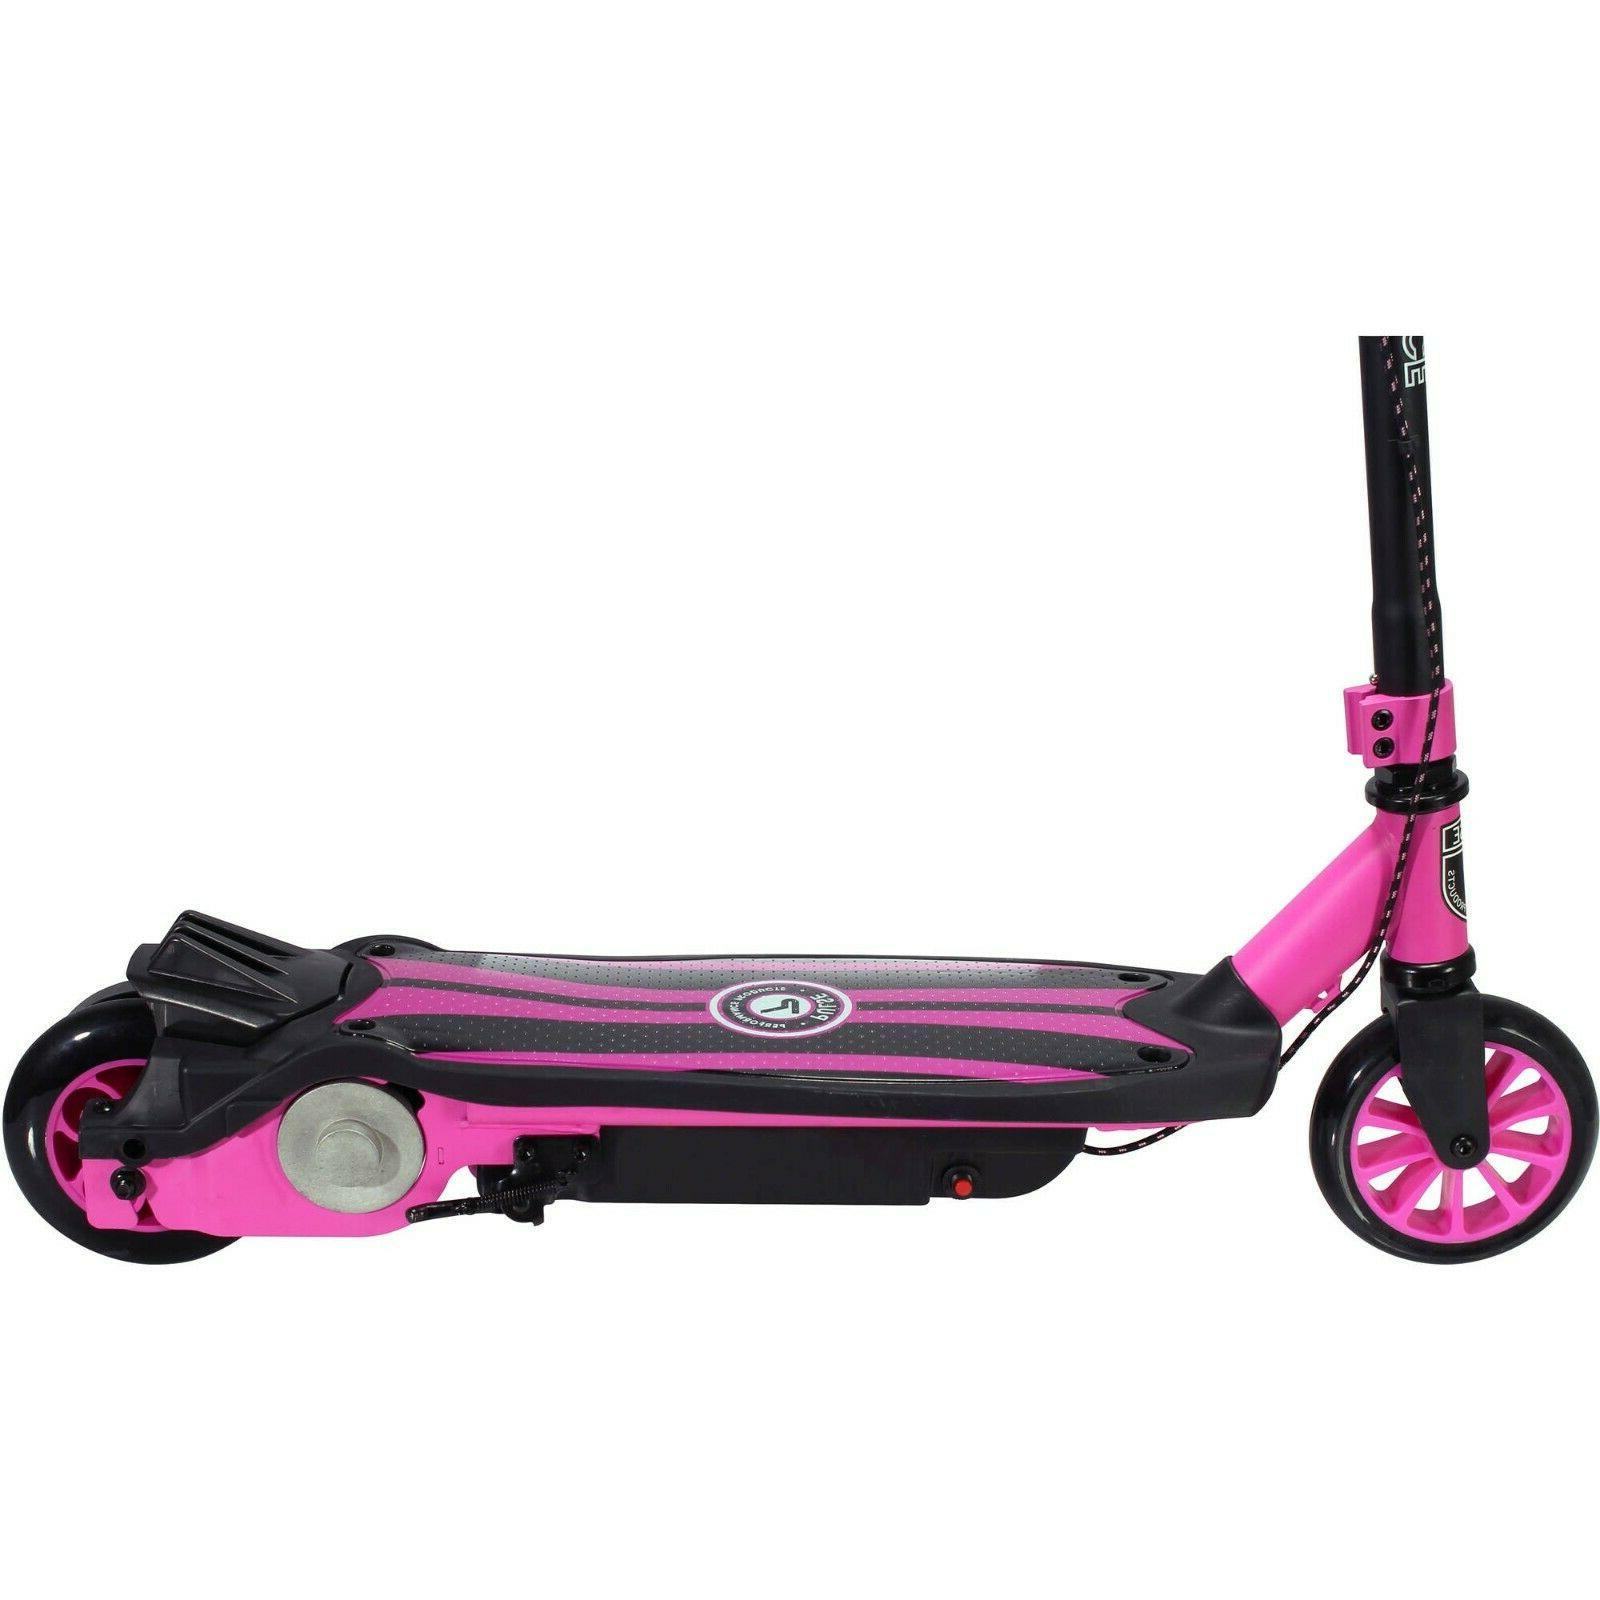 Pulse Electric Scooter,